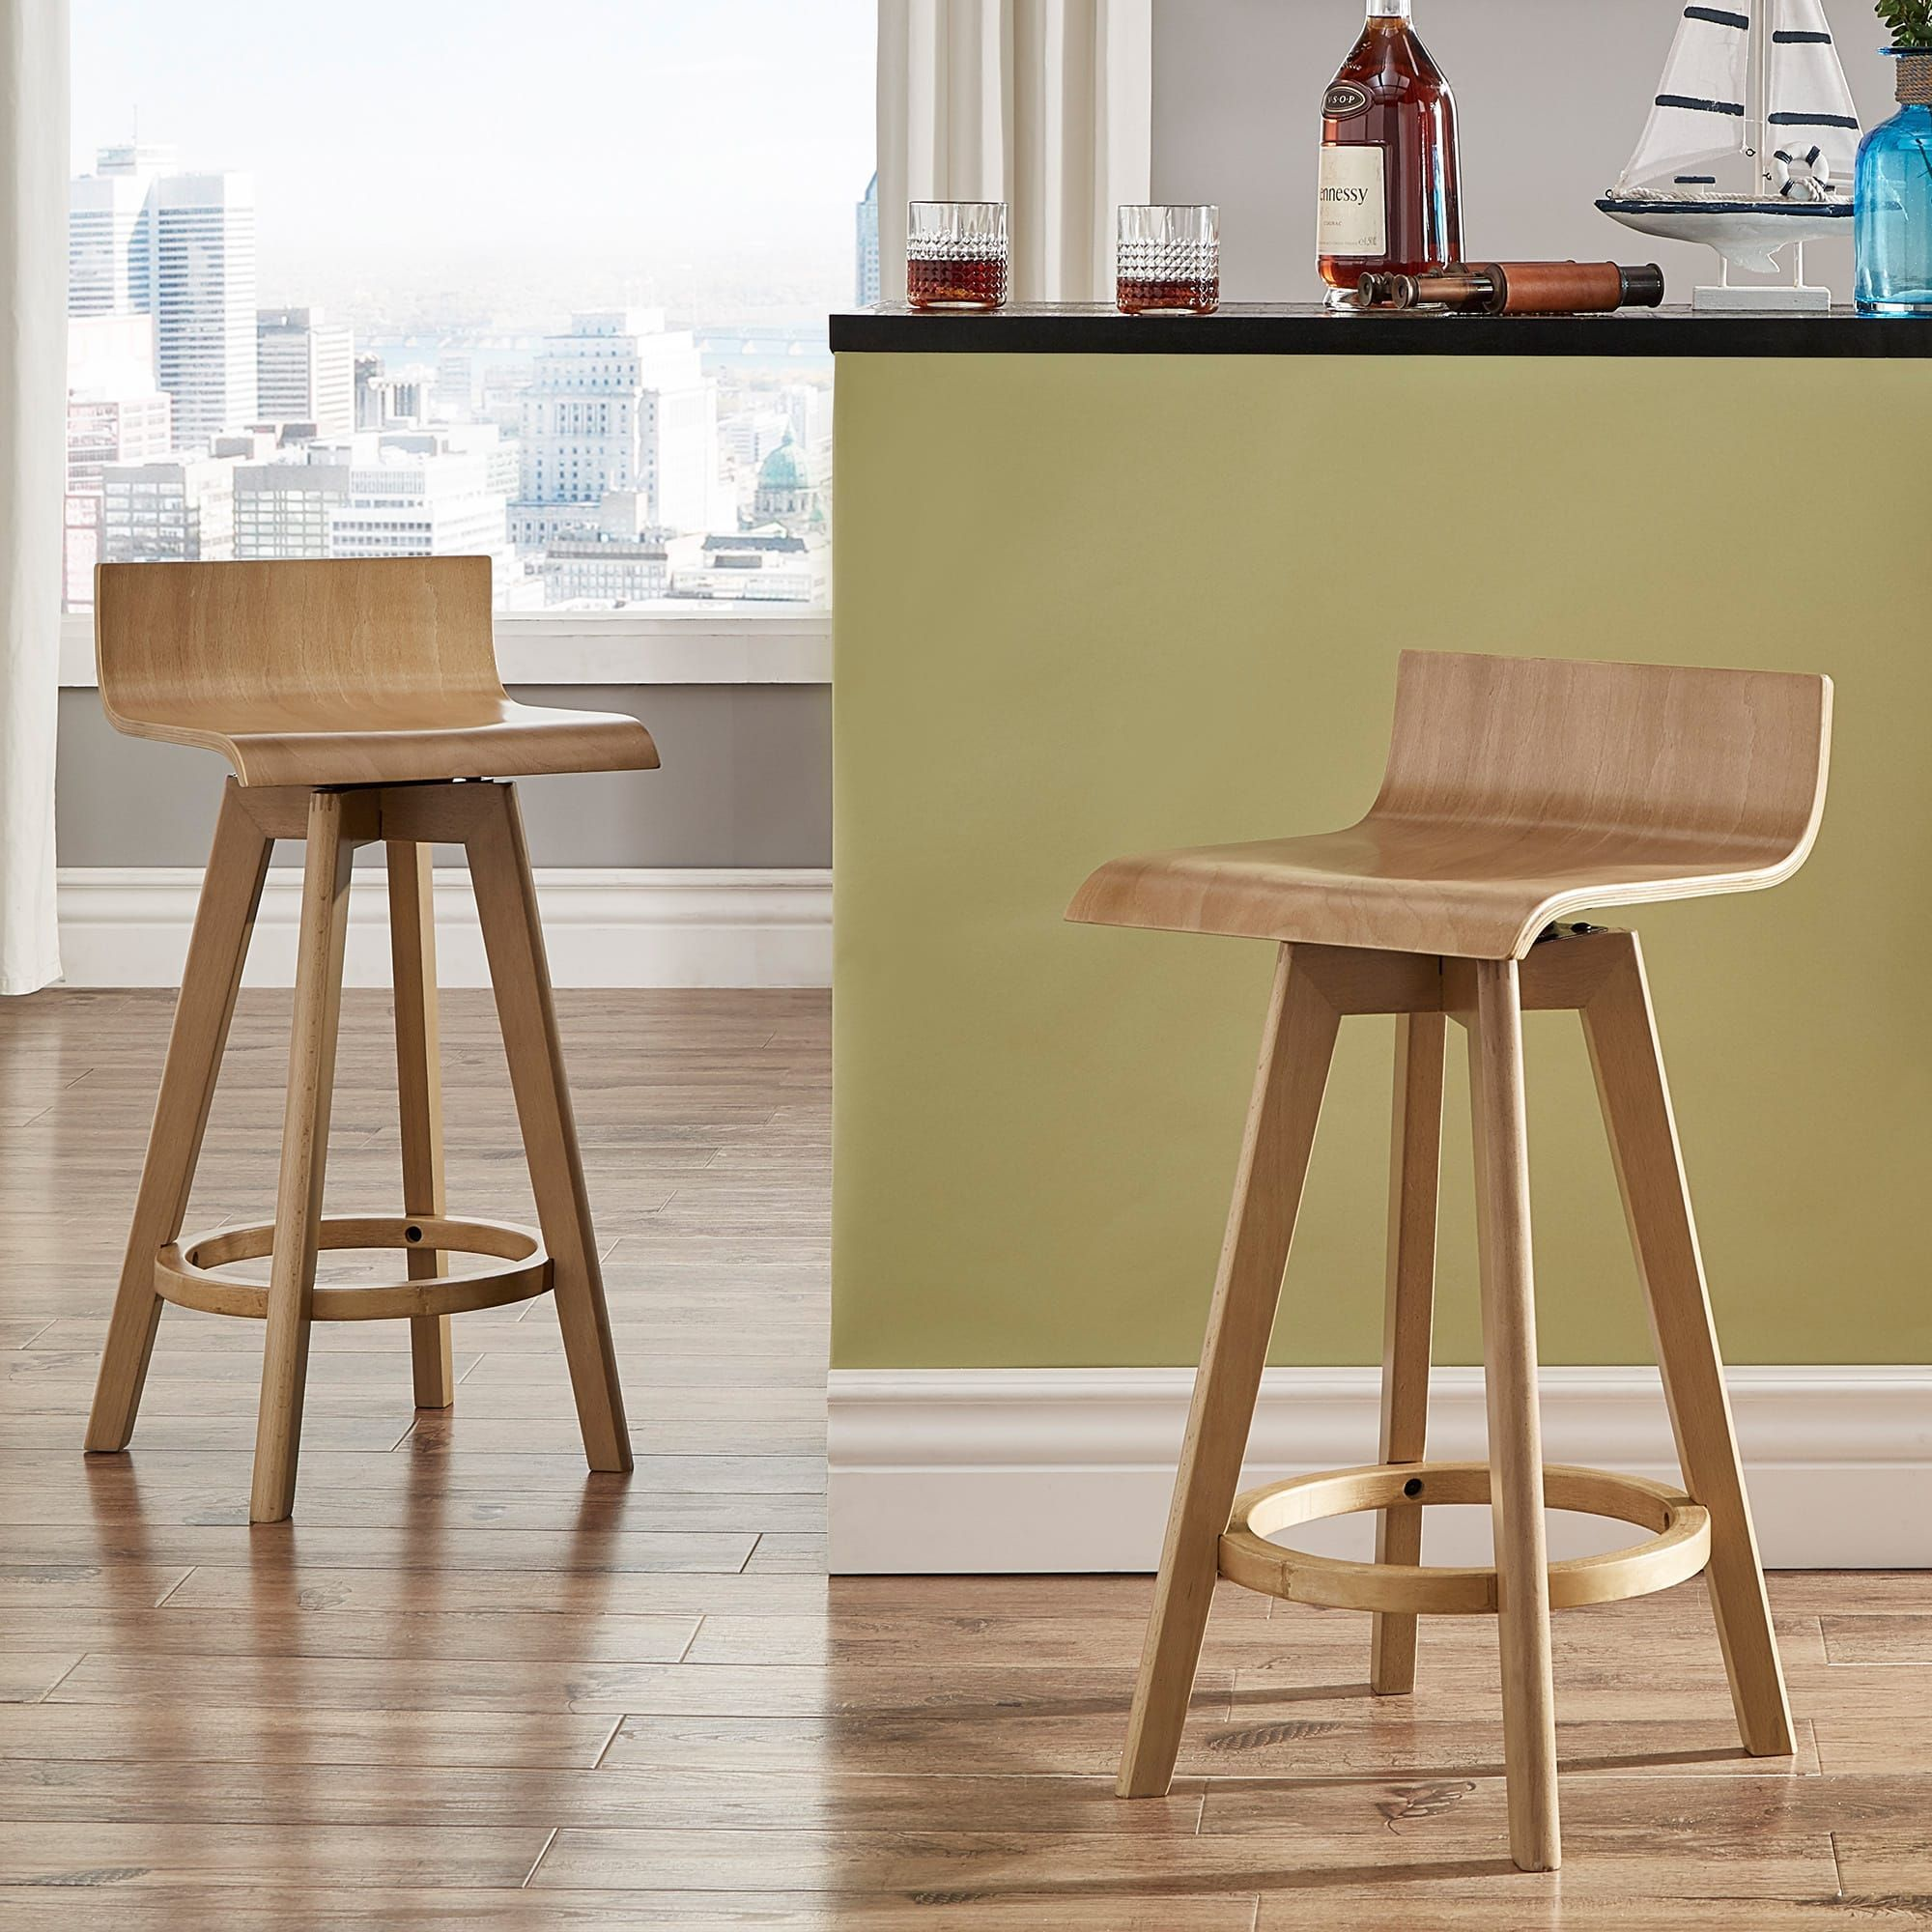 Ellery Mid-Century Modern Swivel Wood Stool (Set of 2) iNSPIRE Q Modern (24  Counter - Natural), Tan